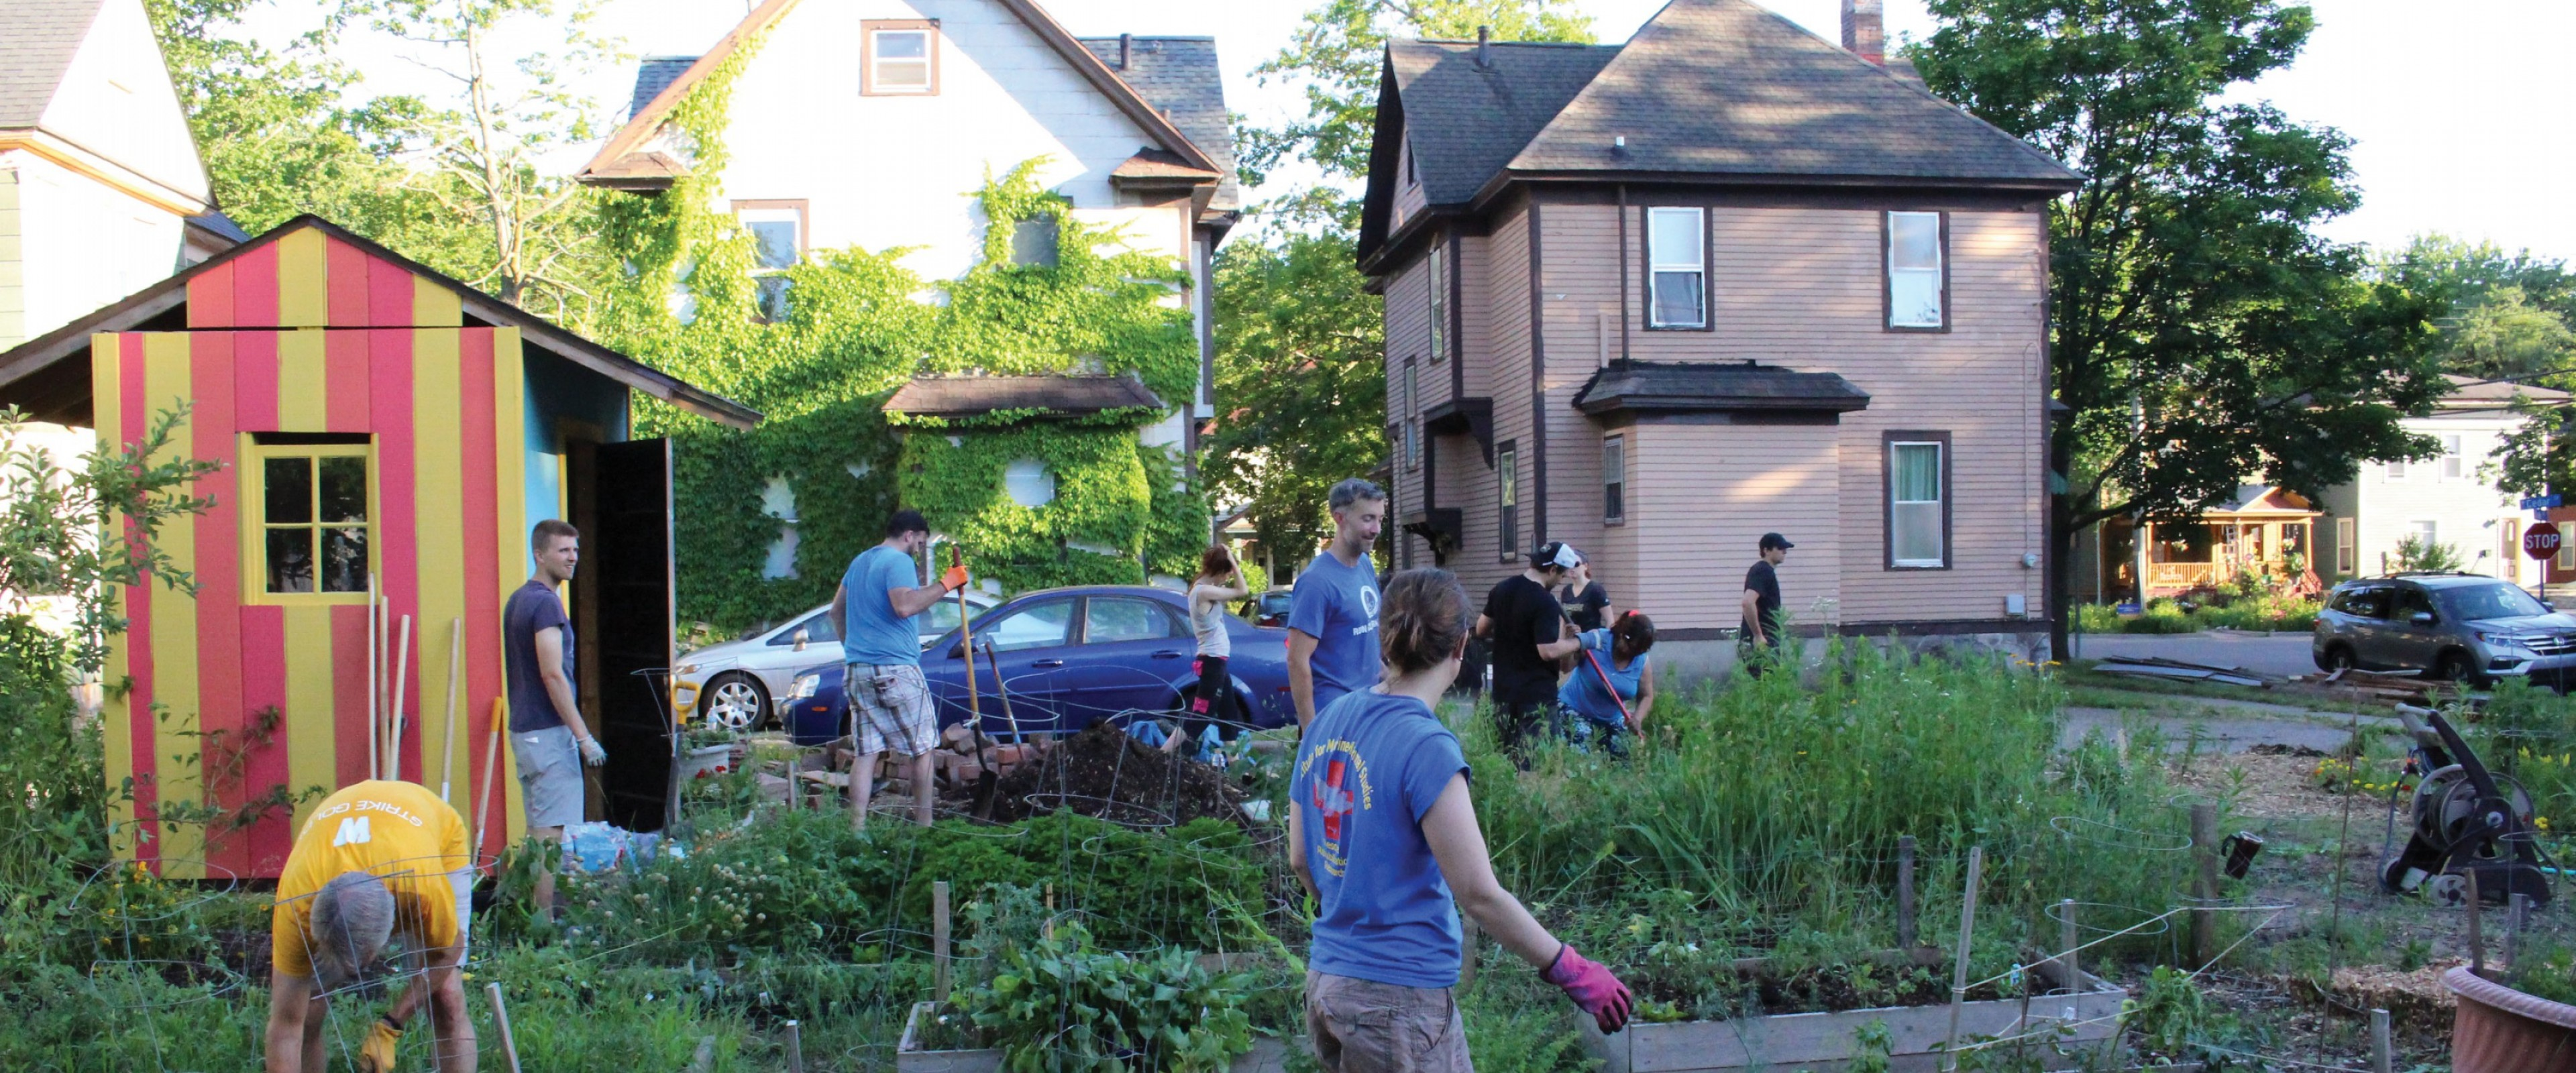 Several people working in a Kalamazoo neighborhood garden